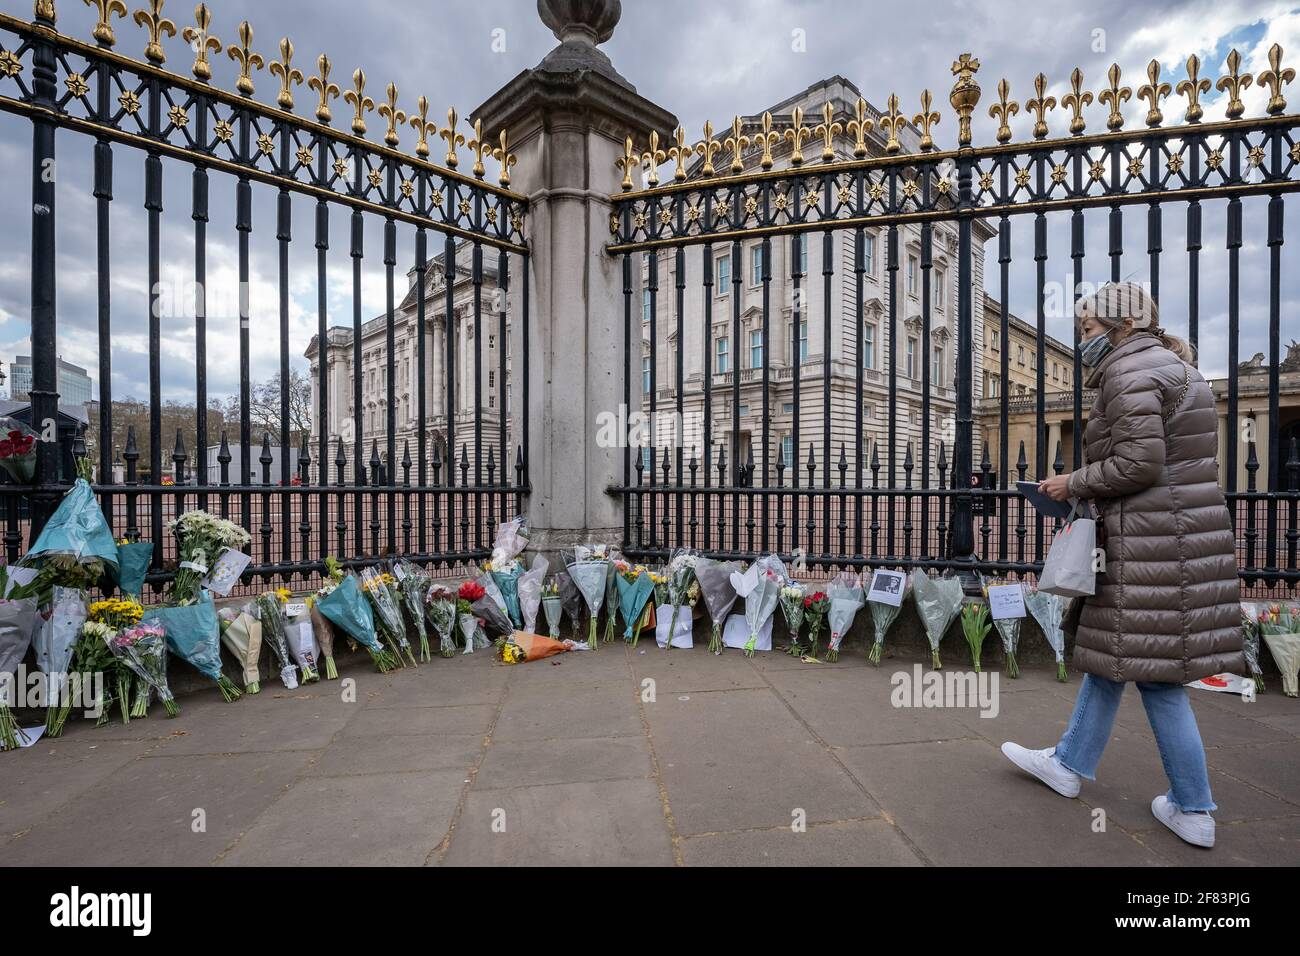 London, UK. 11th April, 2021. Death of Prince Philip: Locals and tourists continue to bring flowers and pay tribute at the gates of Buckingham Palace to the late Duke of Edinburgh who died on Friday aged 99. Credit: Guy Corbishley/Alamy Live News Stock Photo